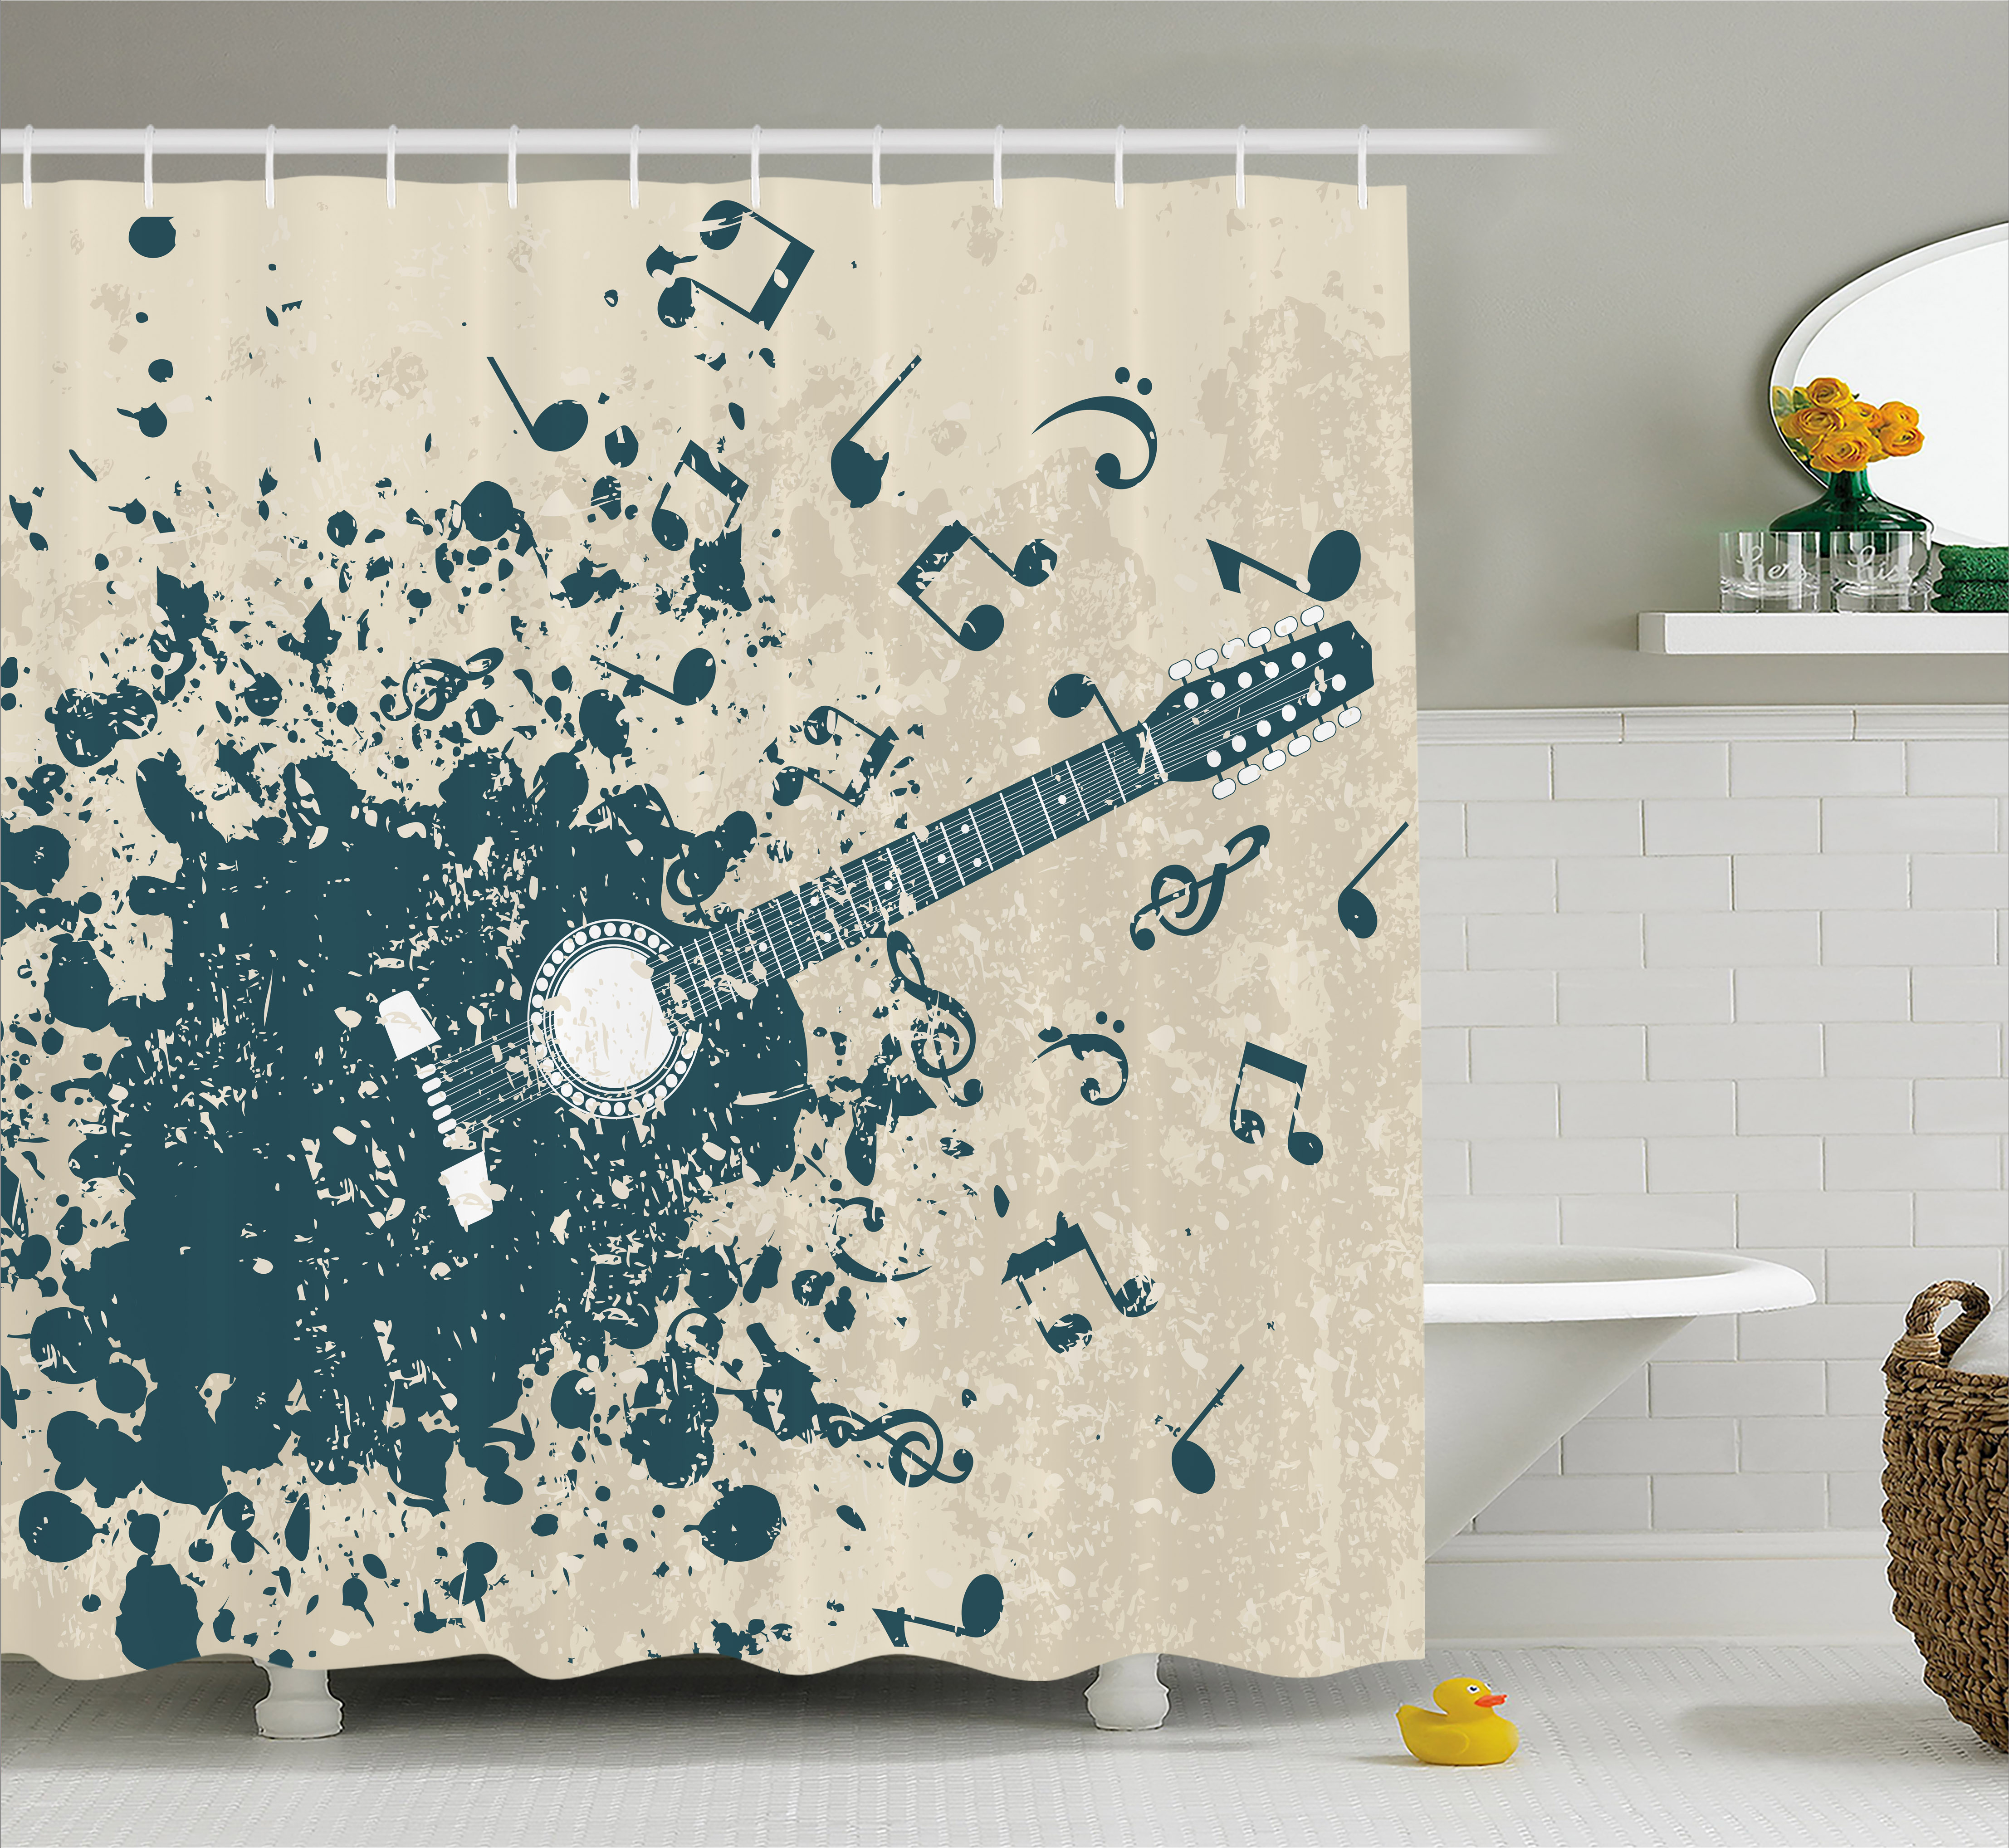 Modern Shower Curtain, Acoustic Guitar on Retro Murky Background with Music Notes Melody Illustration, Fabric Bathroom Set with Hooks, 69W X 84L Inches Extra Long, Beige Dark Blue, by Ambesonne